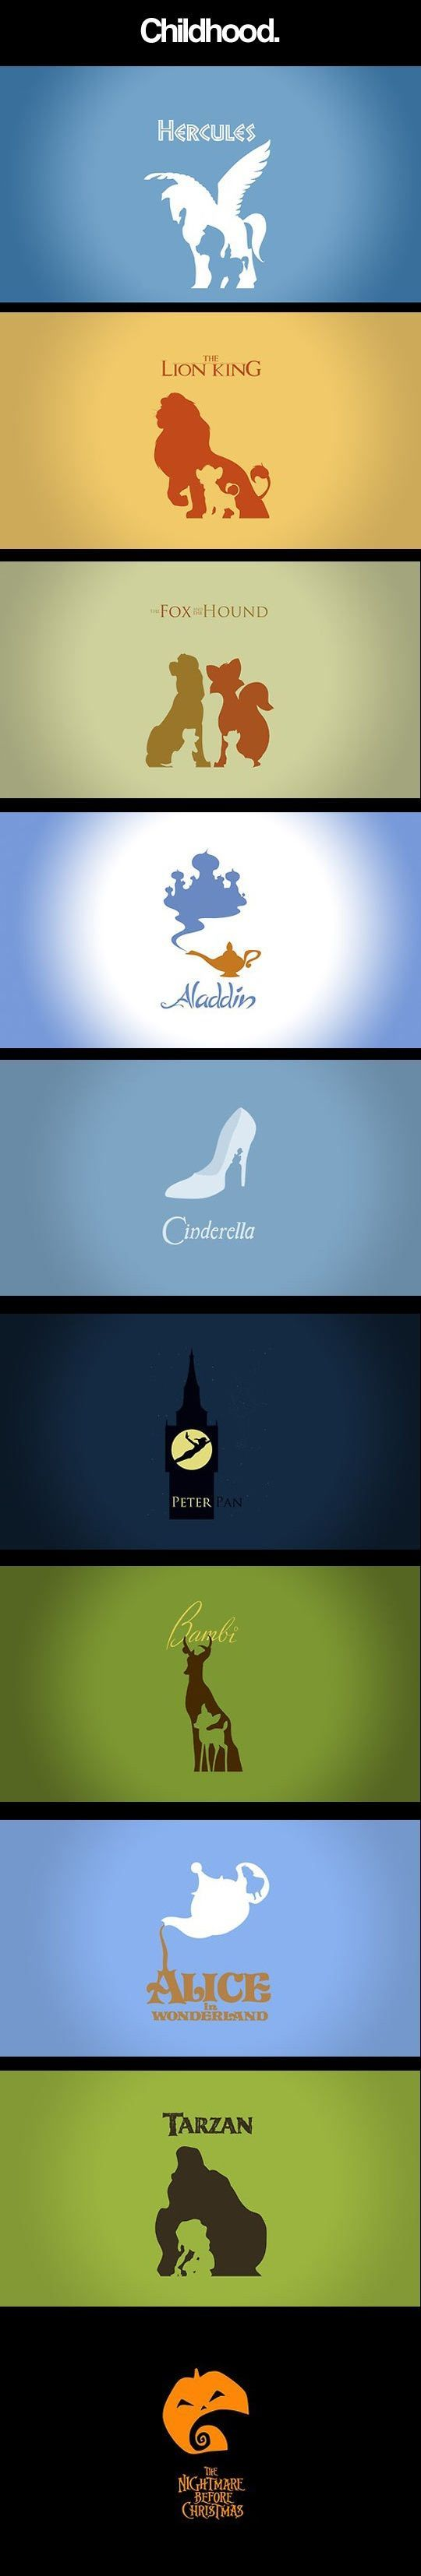 Minimalist posters of Disney Movies - some/most of these were great books and fairytales: